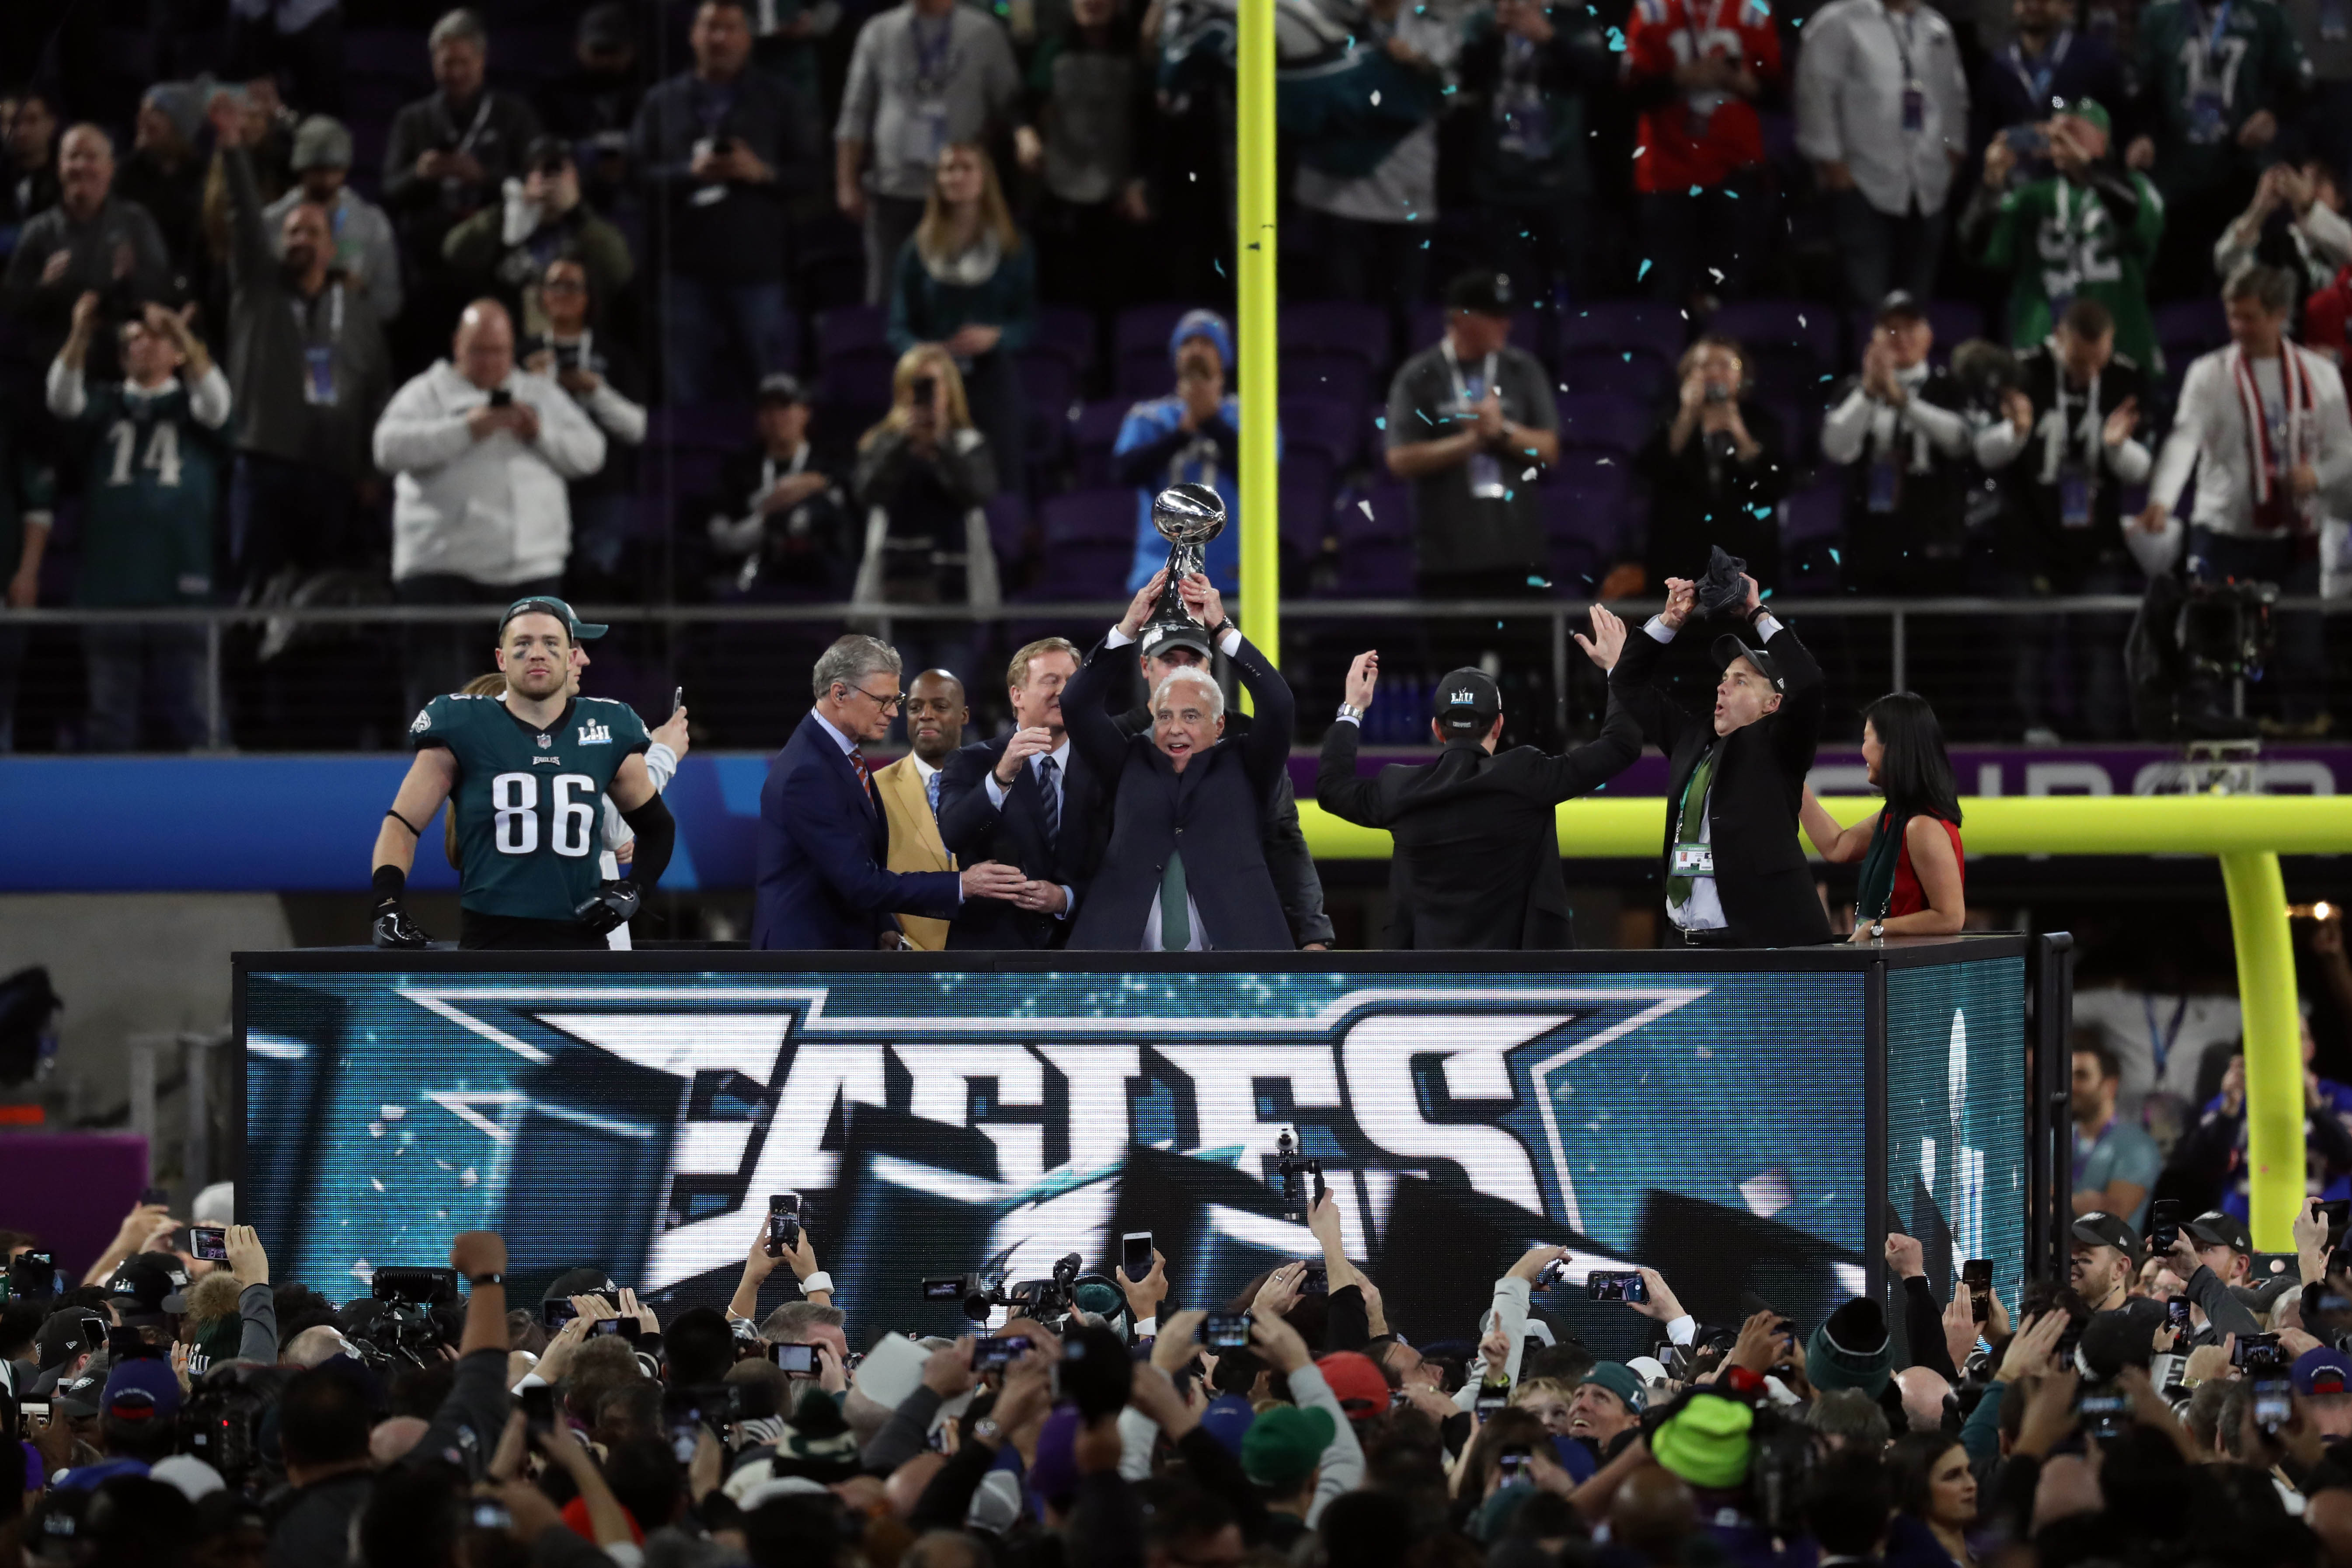 Feb 4, 2018; Minneapolis, MN, USA; NFL commissioner Roger Goodell presents Philadelphia Eagles owner Jeffrey Lurie the the Vince Lombardi Trophy after they defeated the New England Patriots in Super Bowl LII at U.S. Bank Stadium. Mandatory Credit: Brace Hemmelgarn-USA TODAY Sports